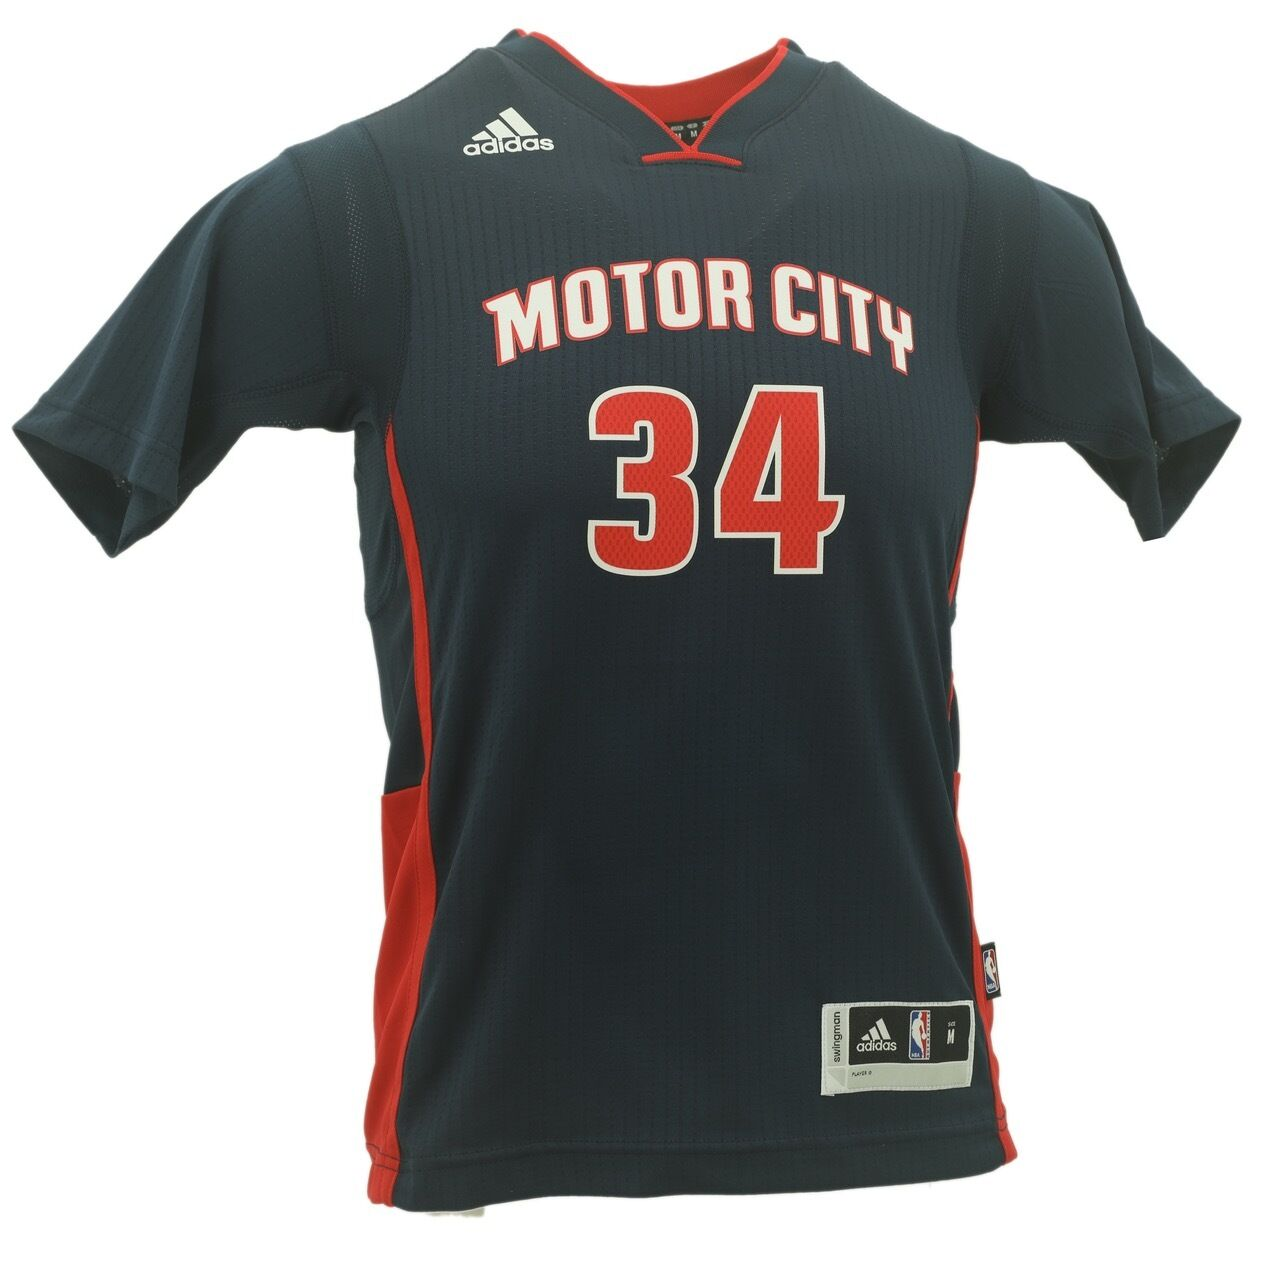 new product f9799 cf0b4 Details about Adidas Tobias Harris Youth Size Detroit Pistons NBA Swingman  Jersey New With Tag